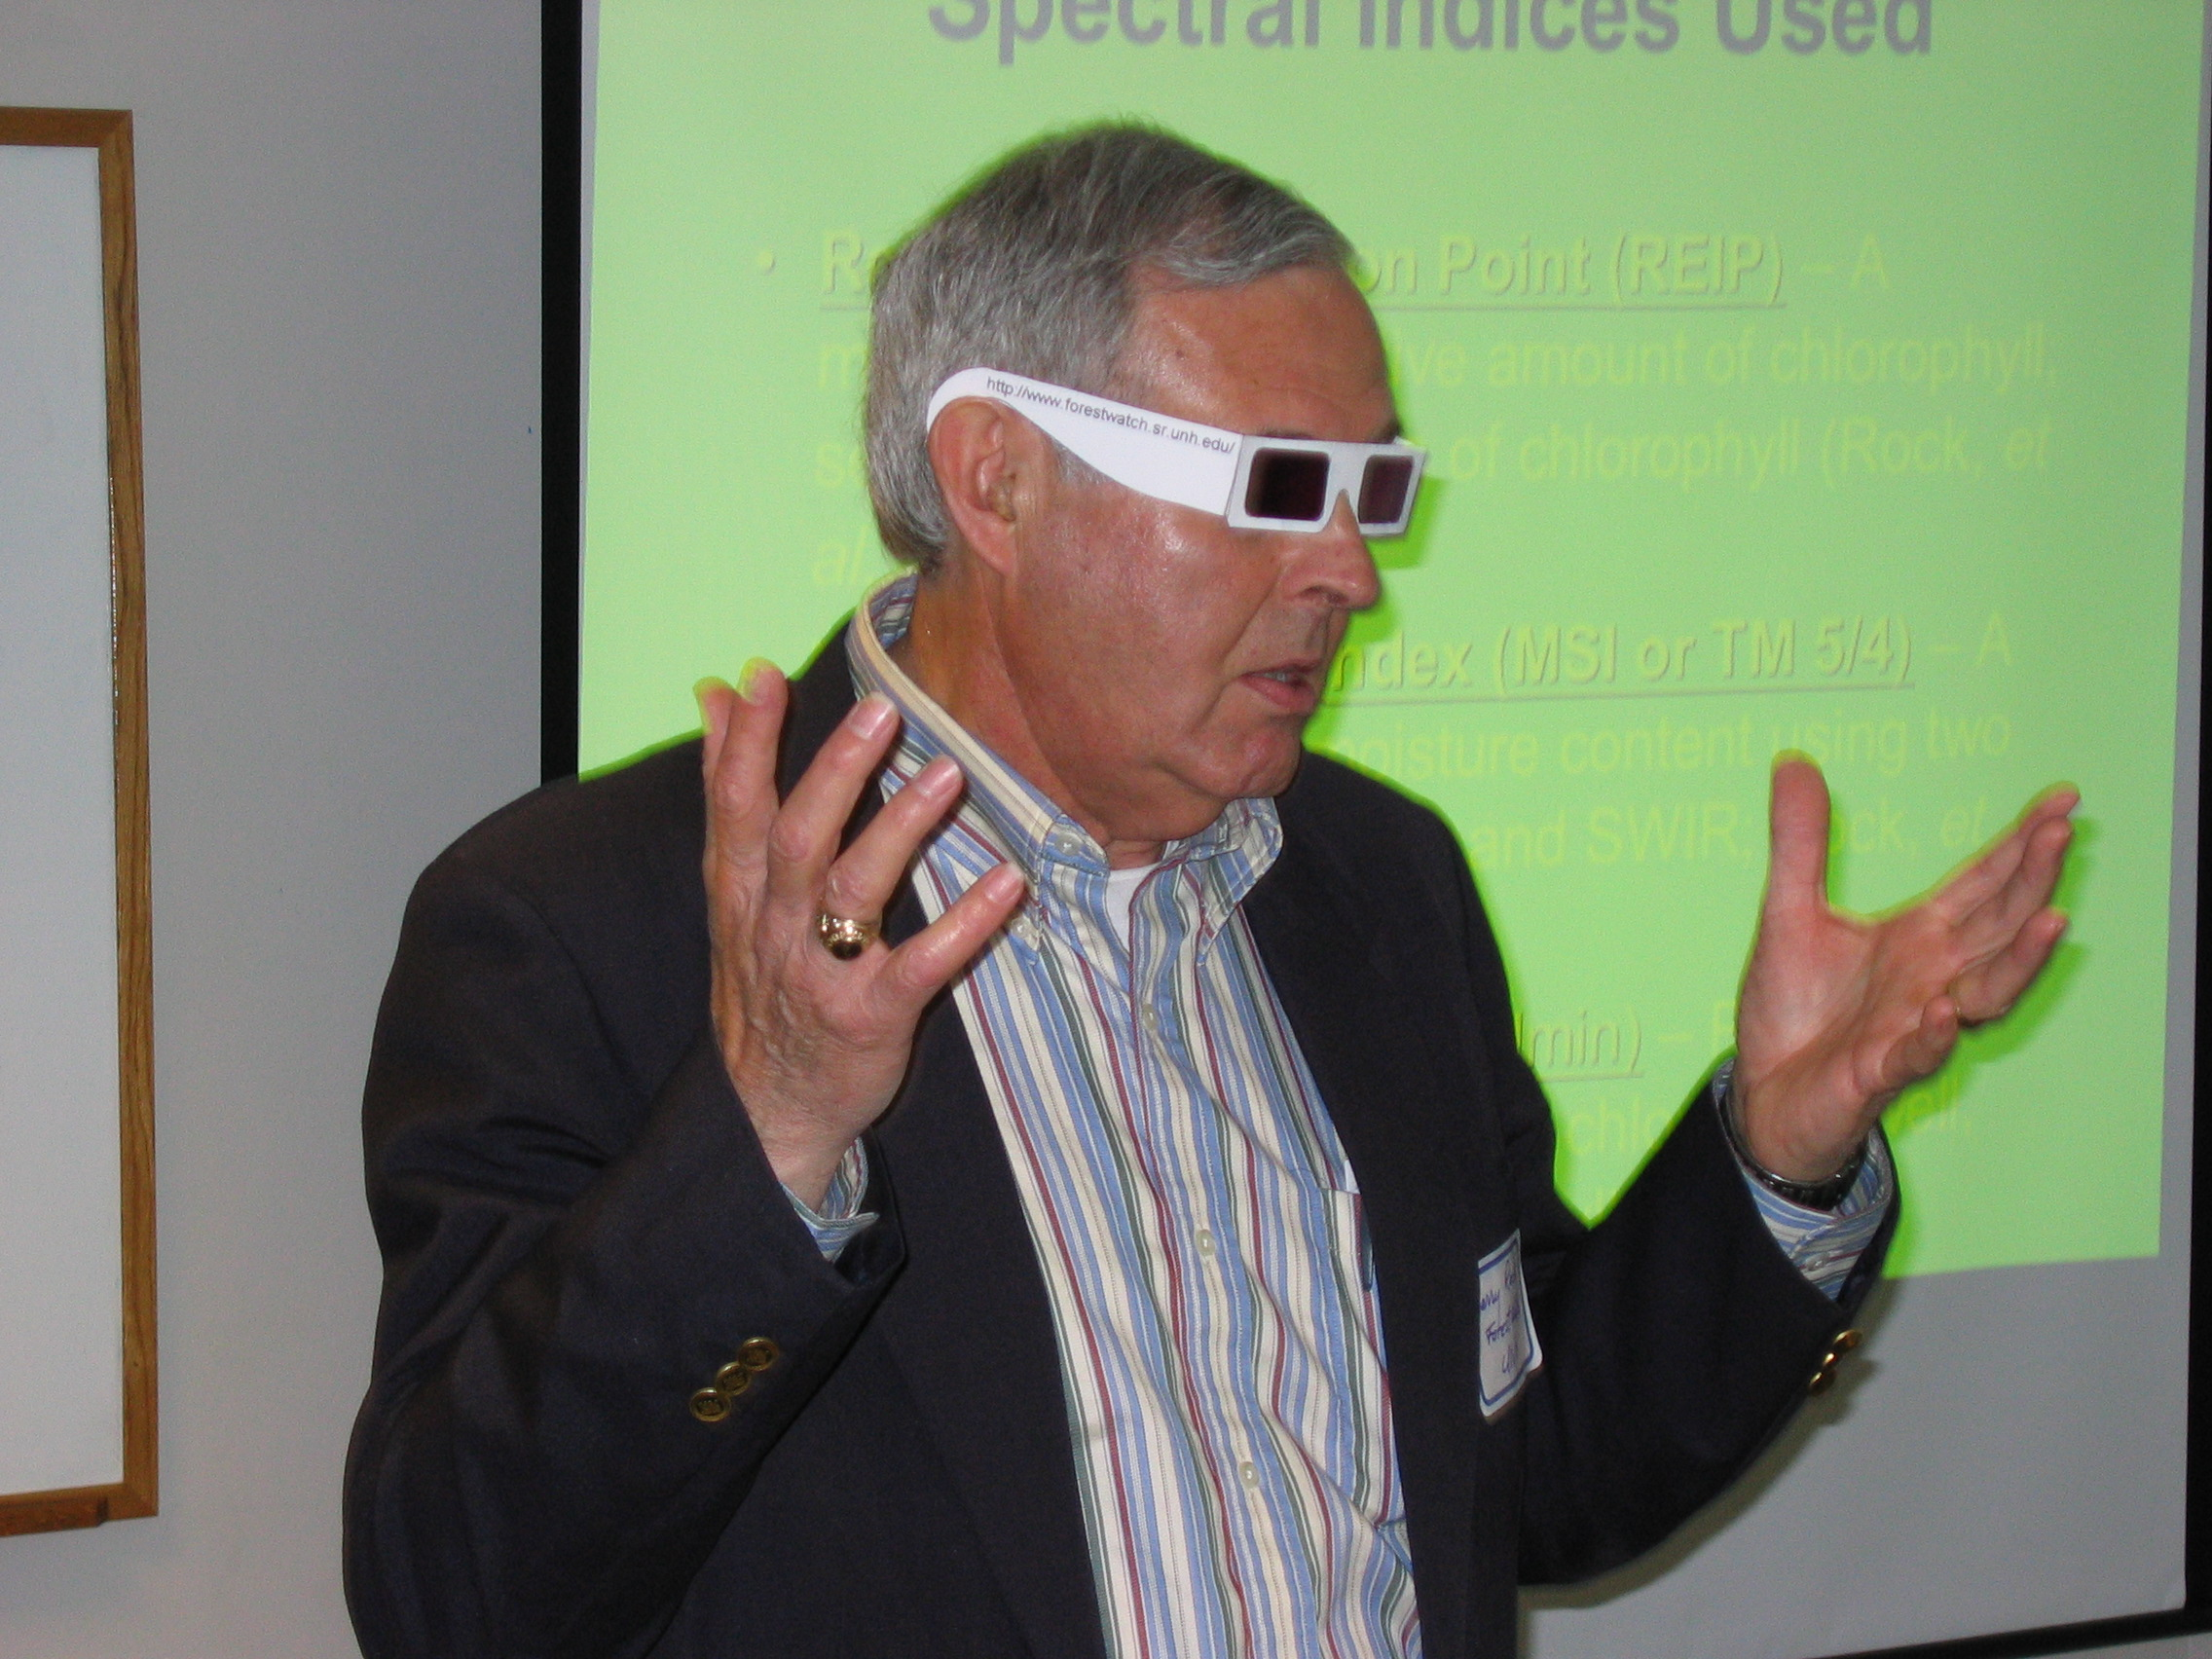 Dr. Barry Rock from the University of New Hampshire wearing the paper version of the plant stress detection glasses during a teacher workshop.